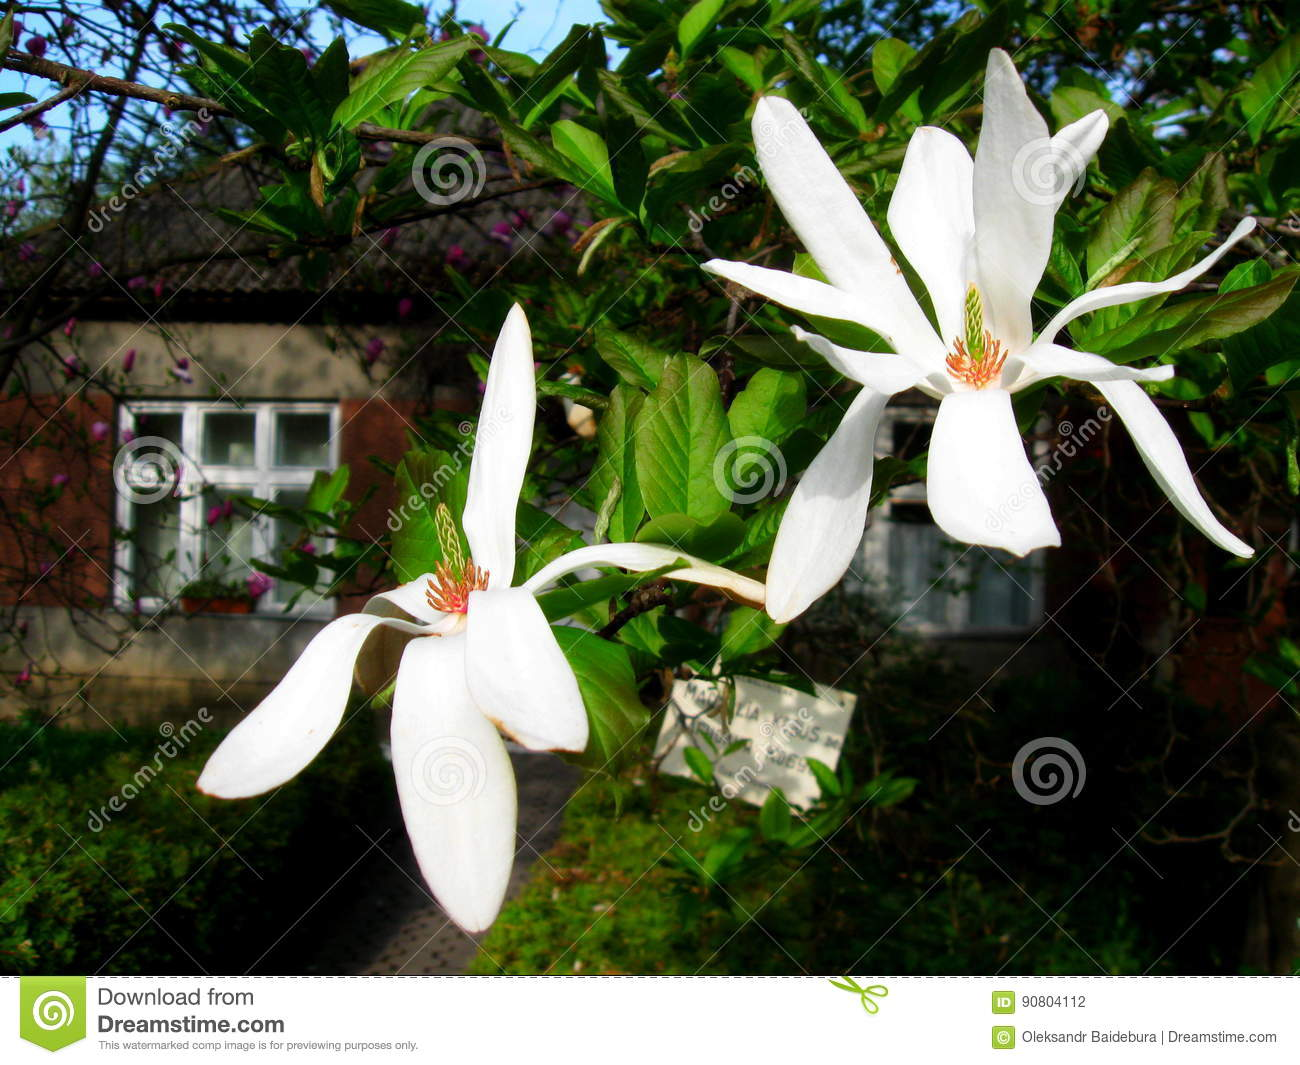 Bloomy magnolia tree with big white flowers stock photo image of download bloomy magnolia tree with big white flowers stock photo image of closeup bright mightylinksfo